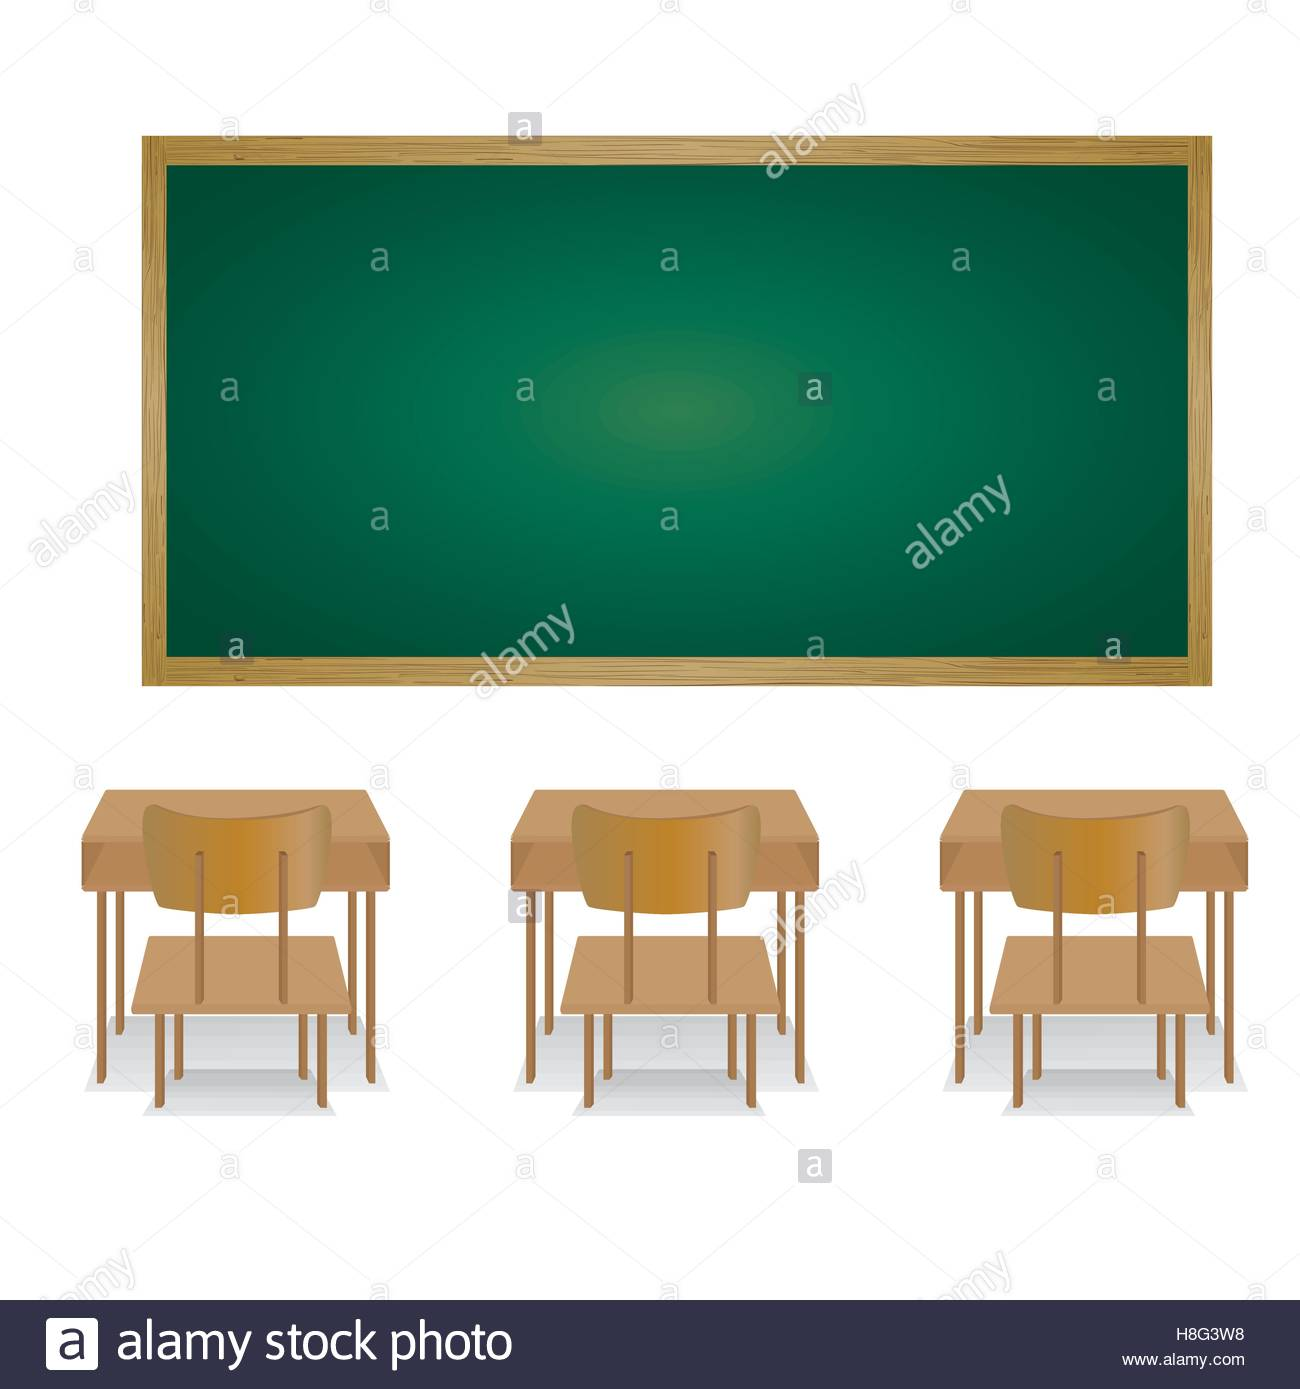 1300x1389 Classroom, Table, Chair, Welcome Back To School, Back To School